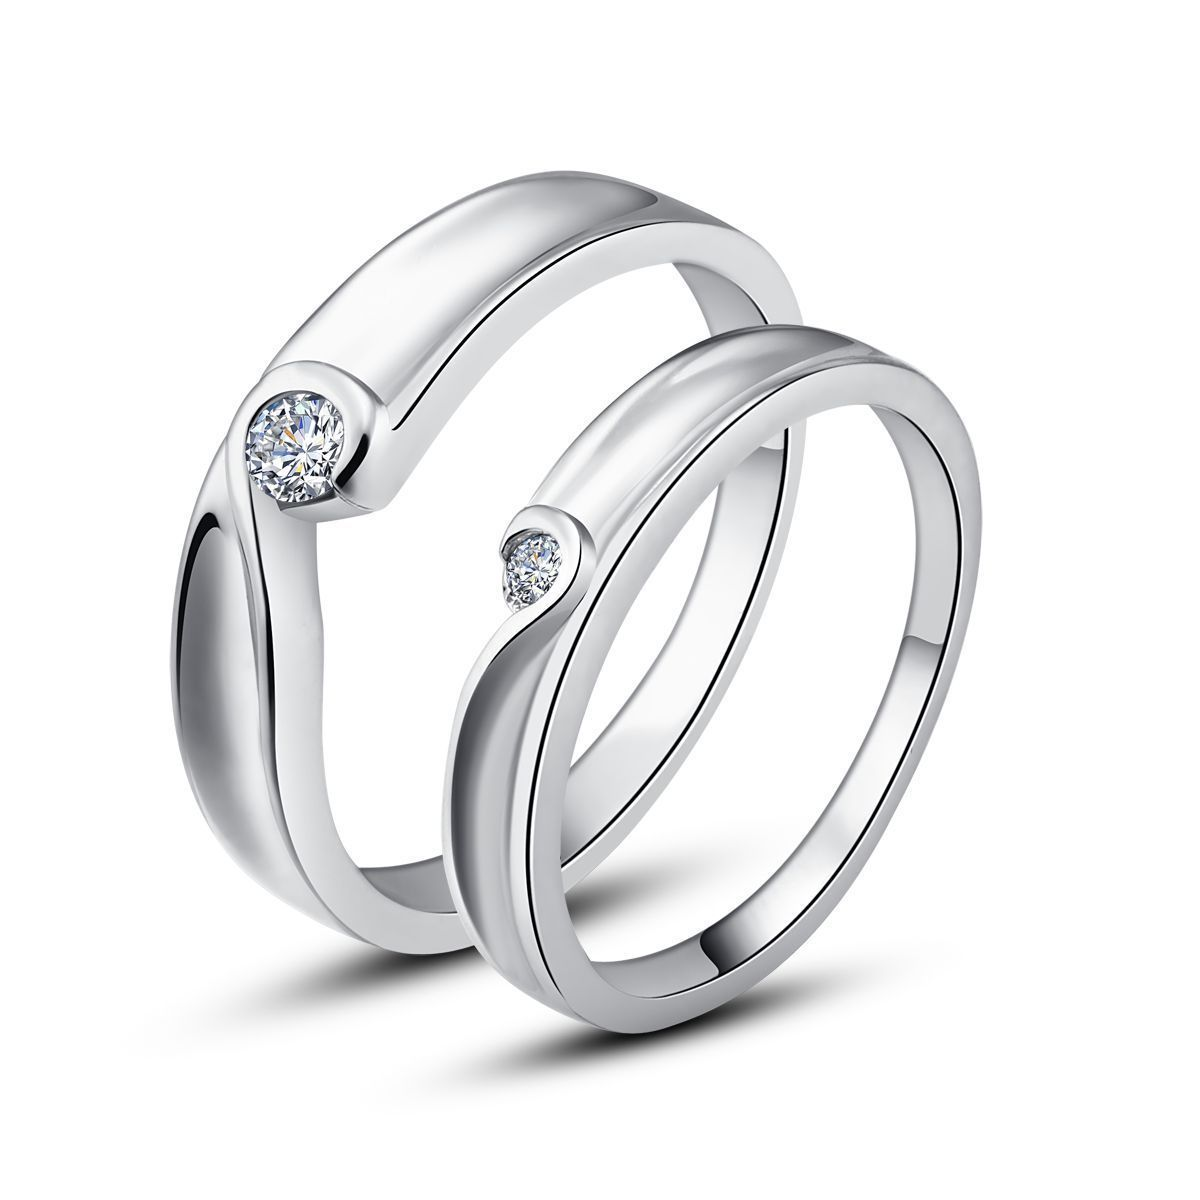 wedding matching wedding bands MATCHING WEDDING BANDs WITH BEZEL SET ROUND SOLITAIRE DIAMOND